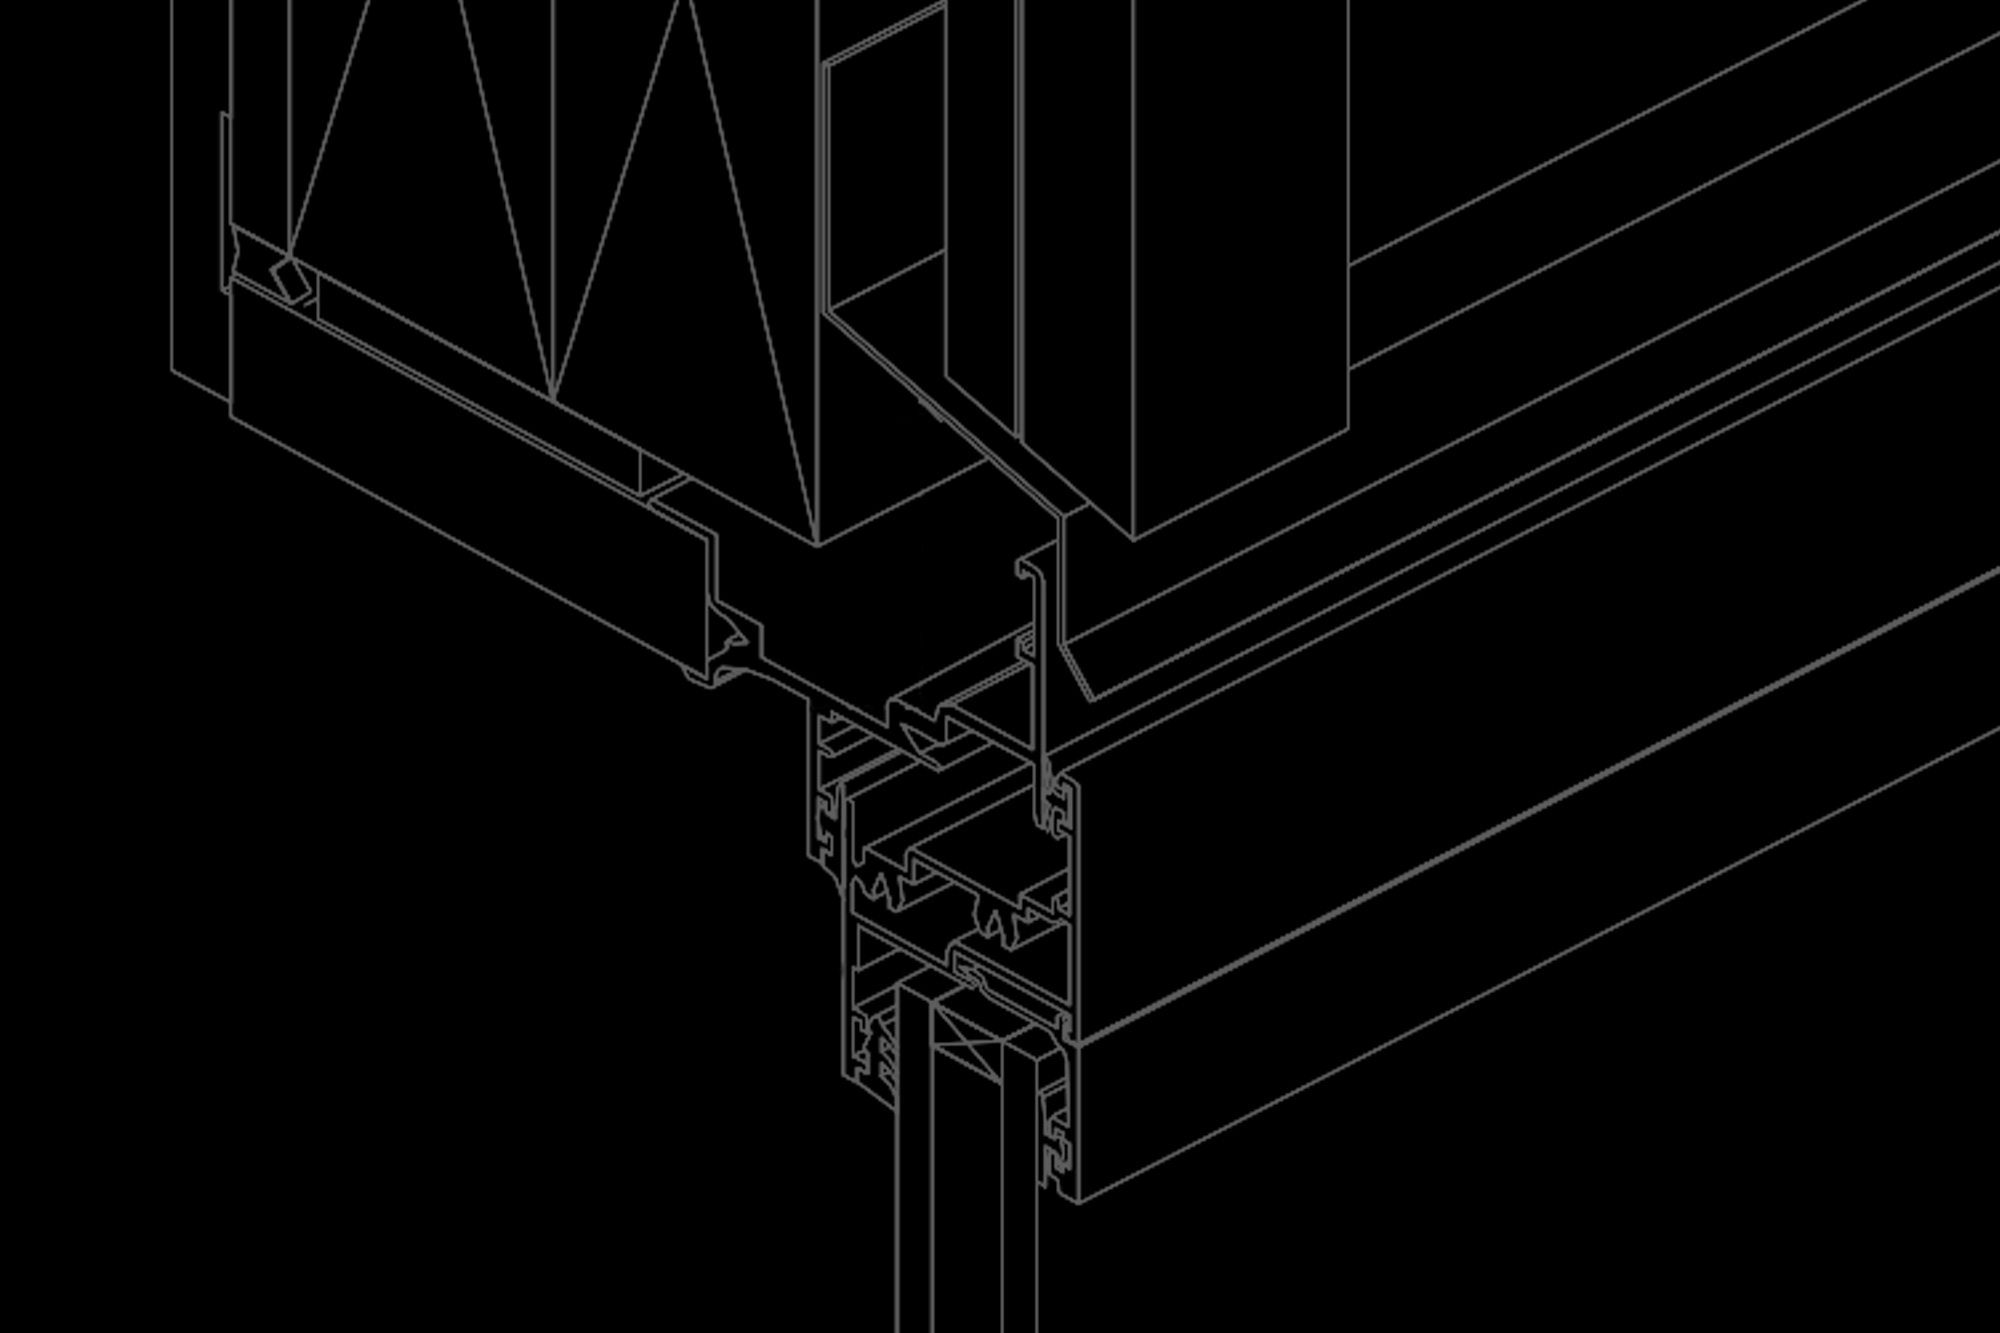 Cladding Drawings - PDF, REVITT, DWG...  Find it here